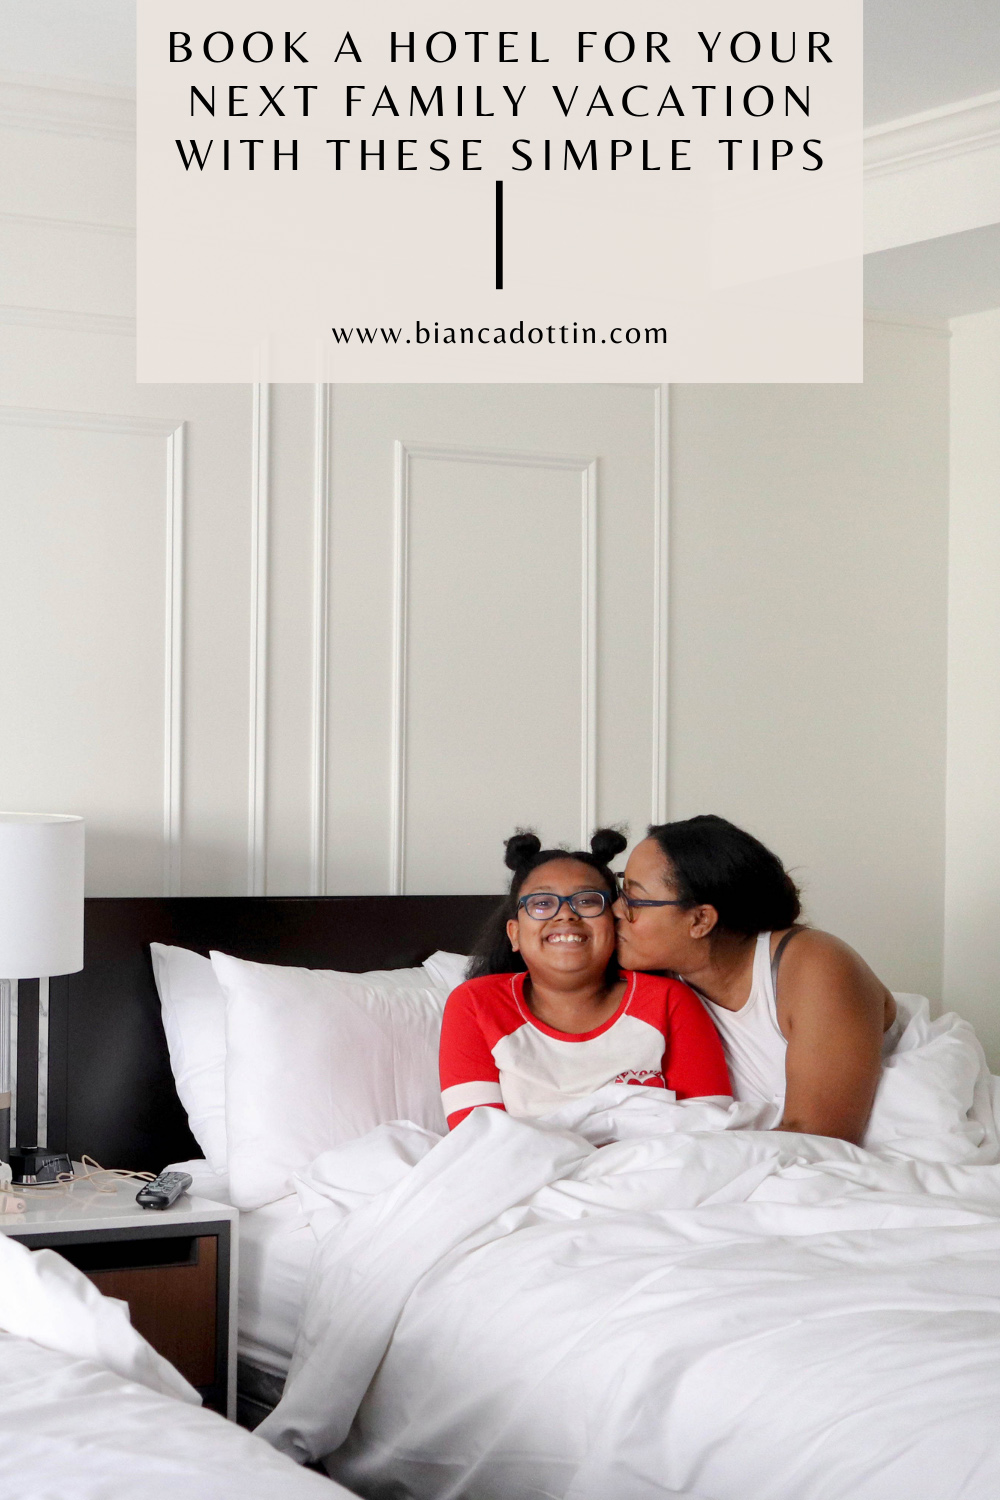 Book a Hotel for Your Next Family Vacation with These Simple Tips